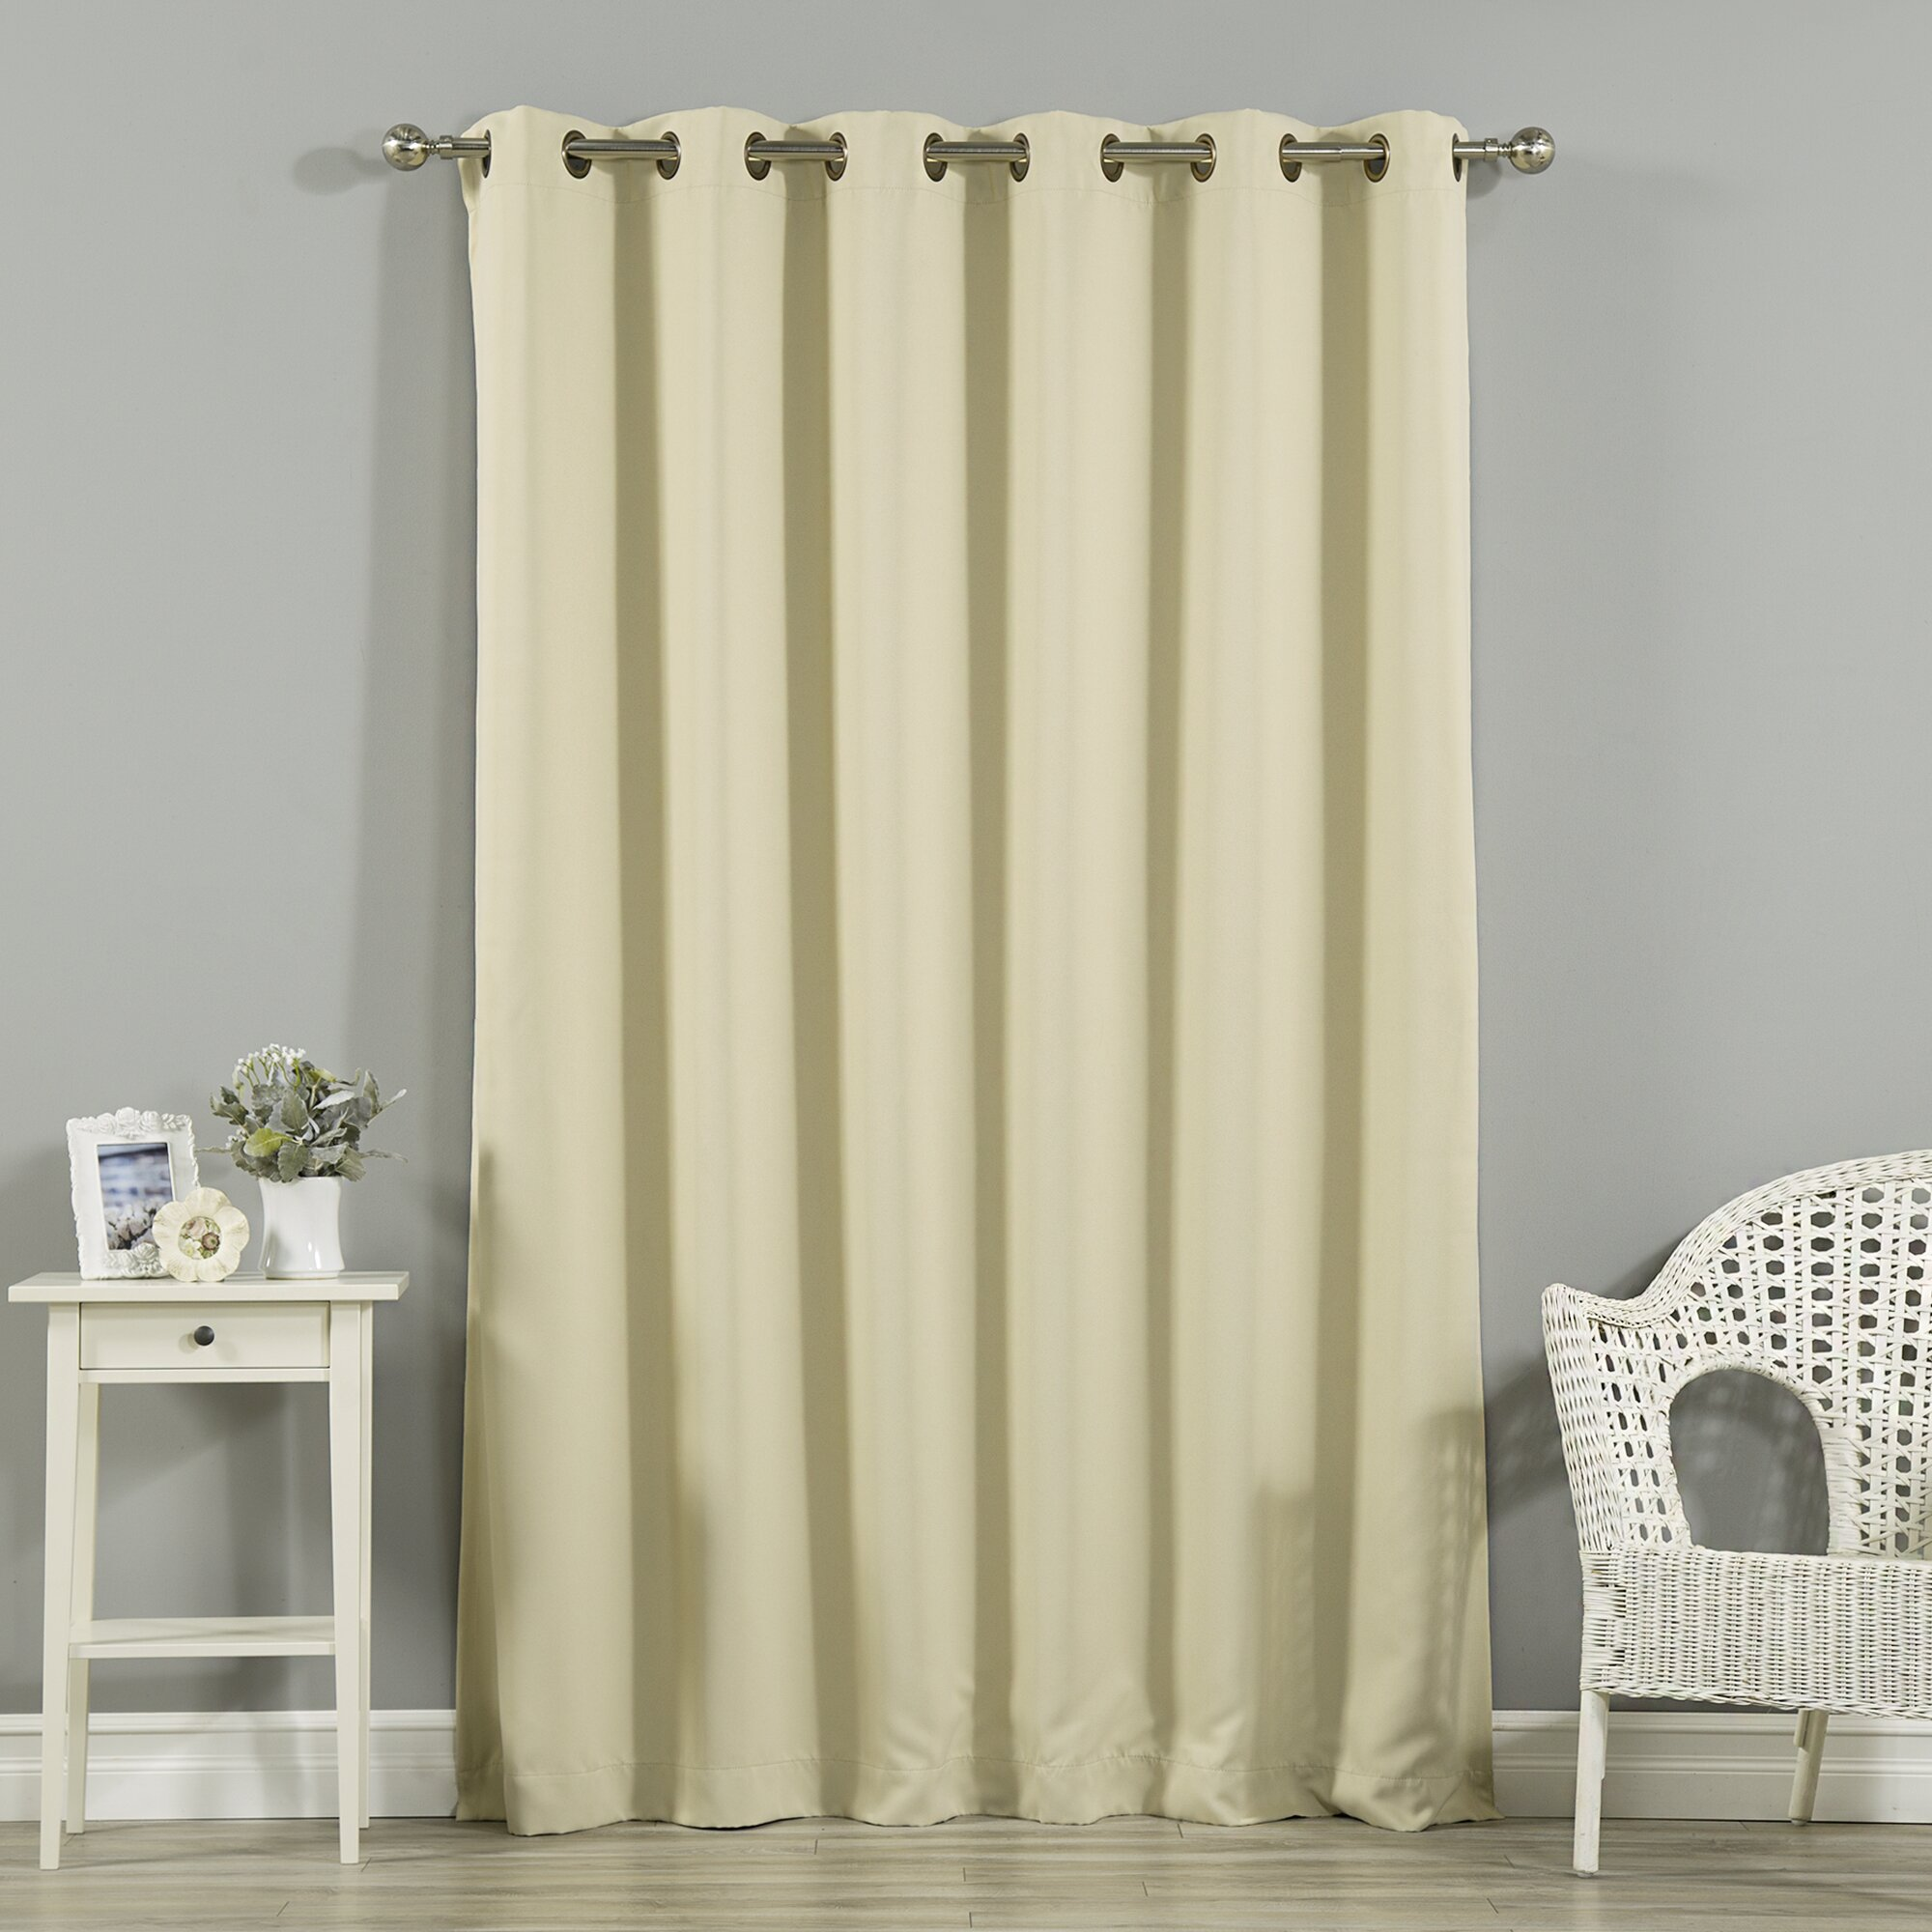 Black ruffle curtains - Scarsdale Extra Solid Blackout Thermal Grommet Single Curtain Panel